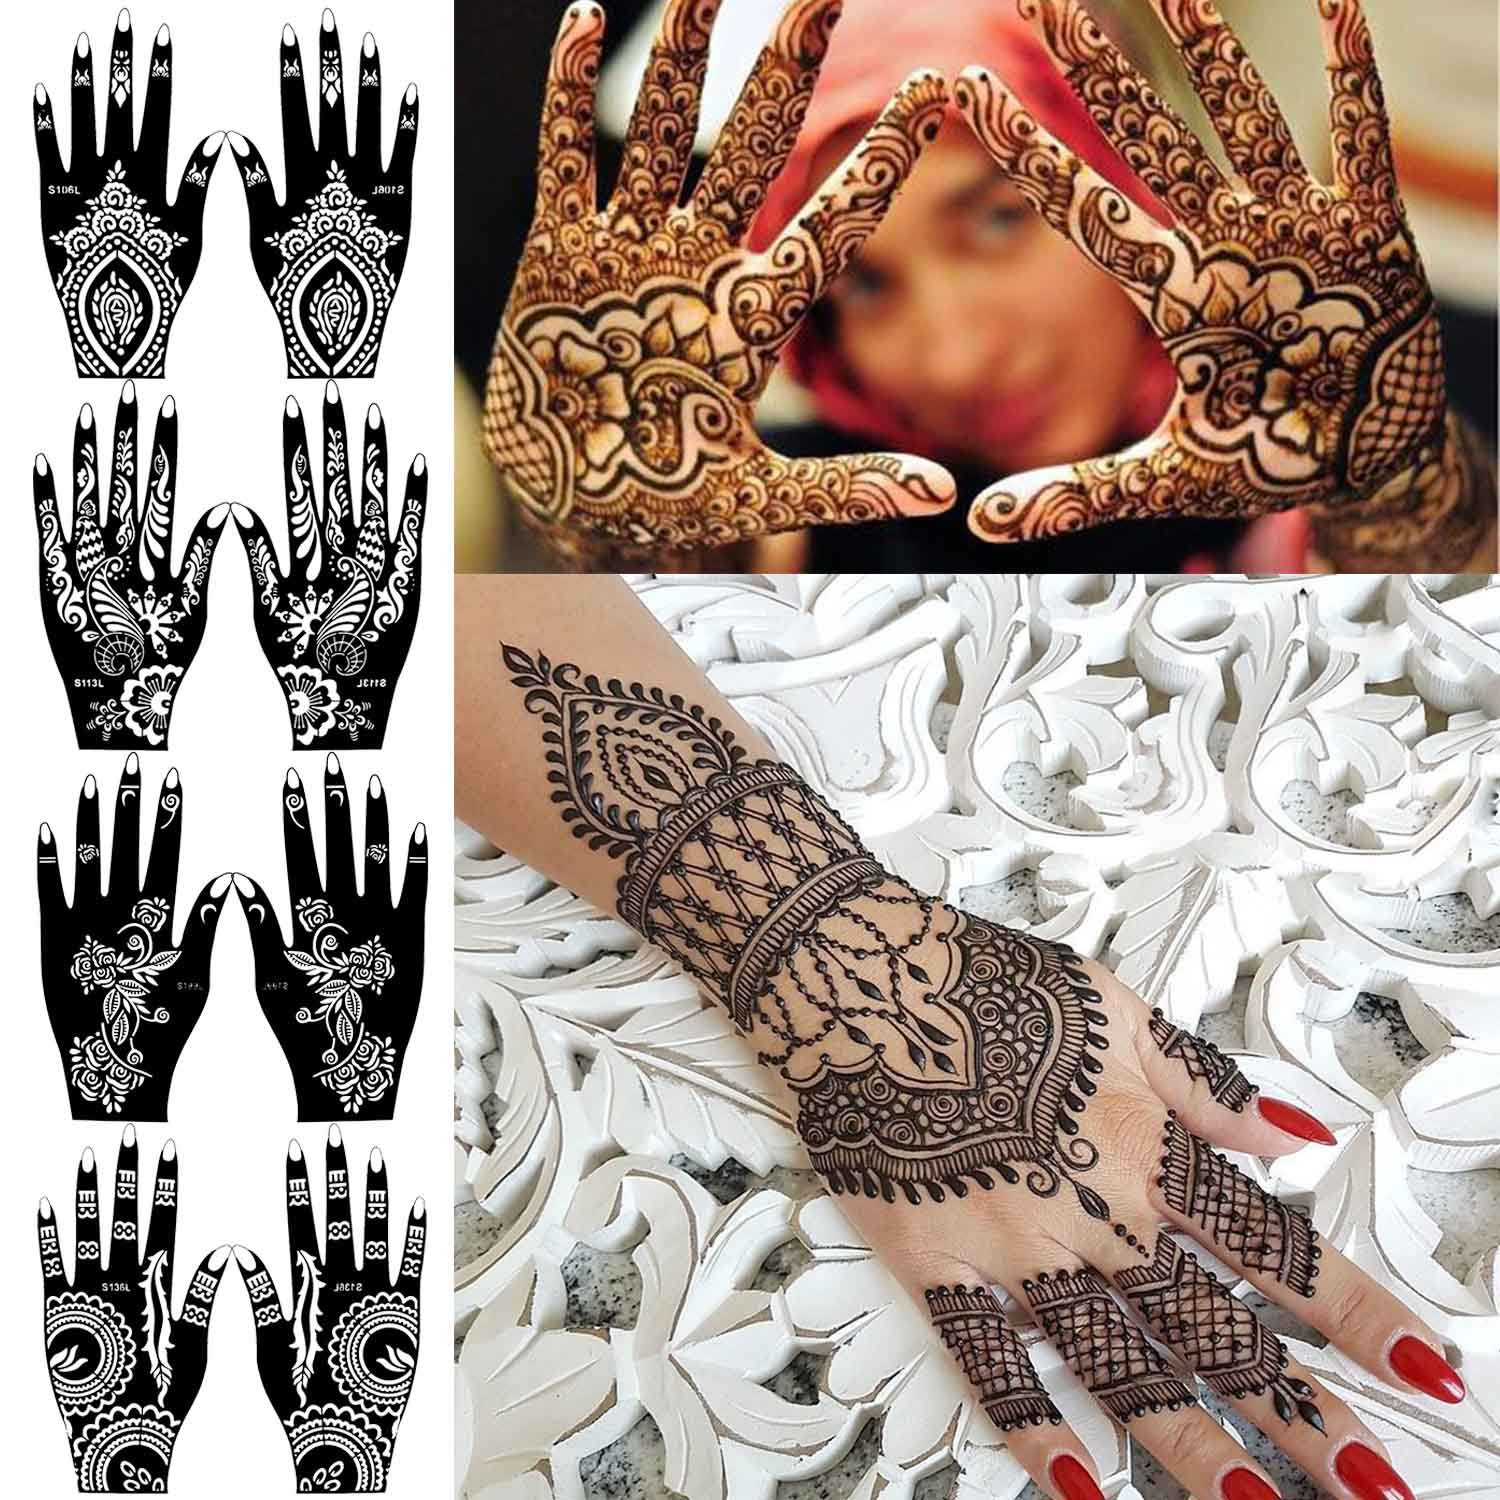 COKOHAPPY 8 Sheets Hand Indian Painting Stencil Tattoo Self,Adhesive Body  Art Designs for Hands , Temporary Indian Arabian Tattoo Reusable Stickers